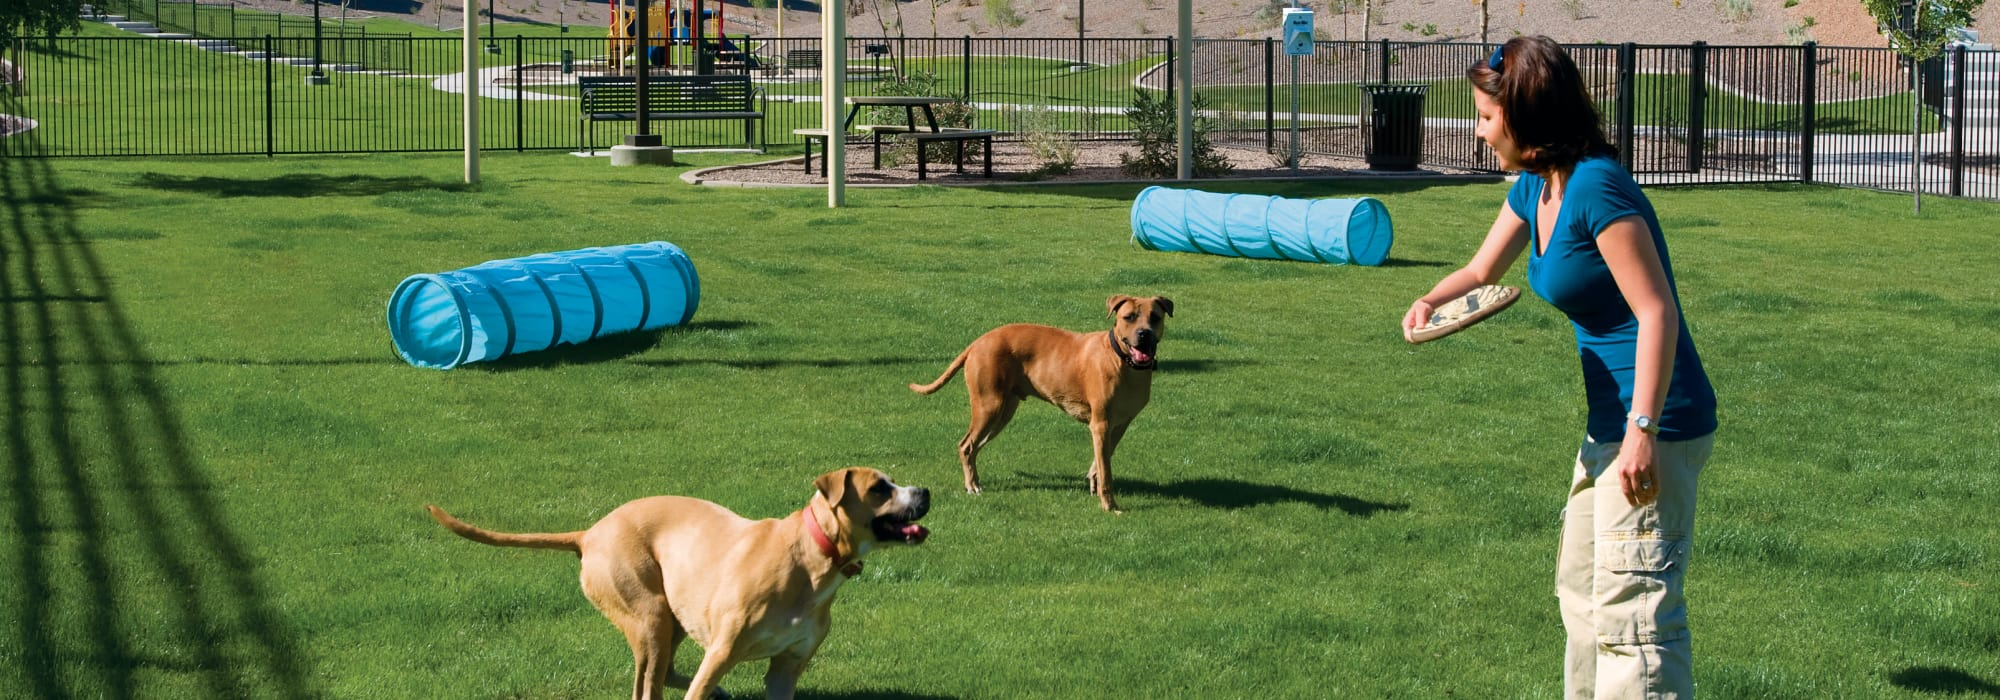 Resident dog park at Ravenwood Heights in Tempe, Arizona